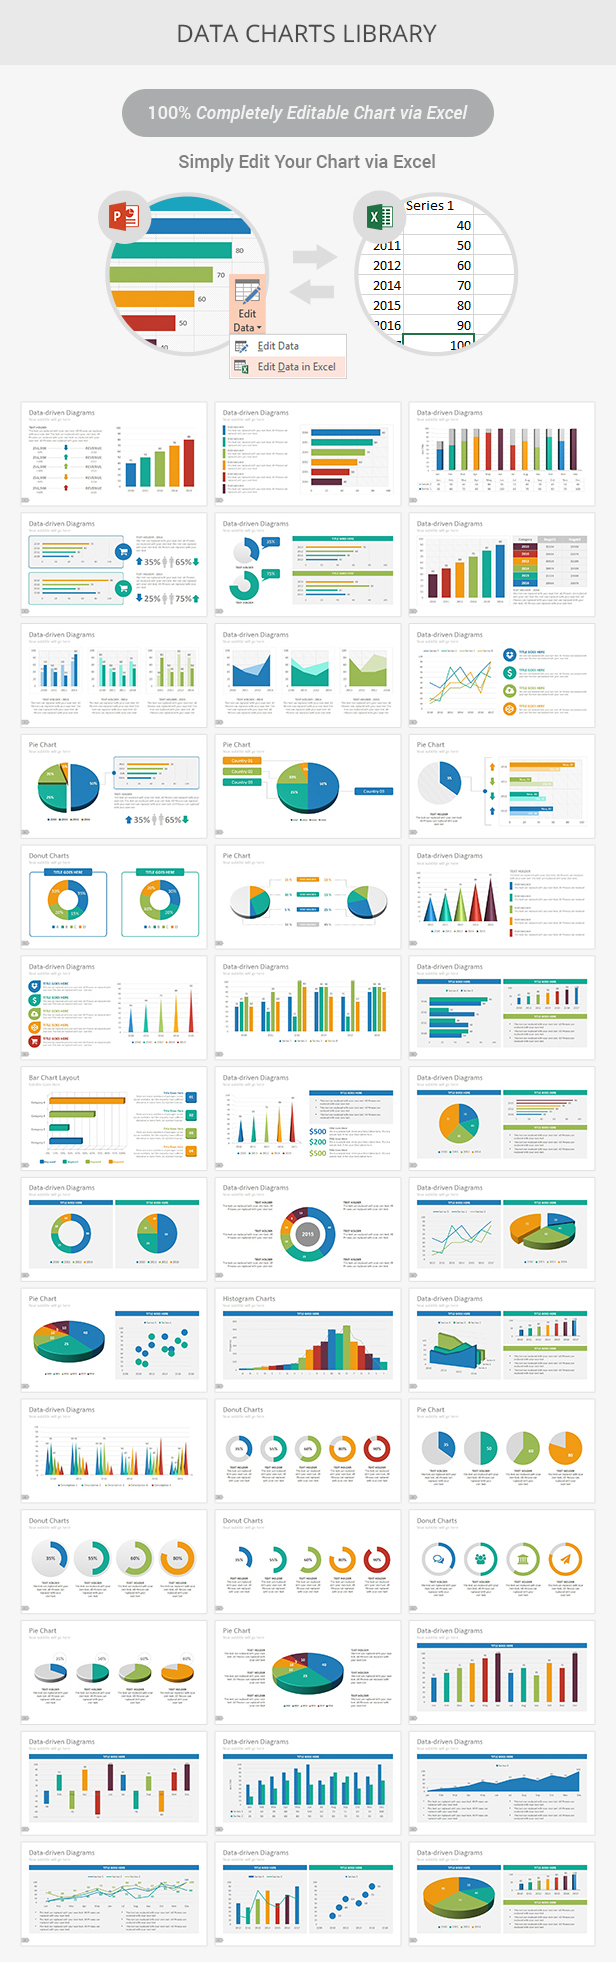 Gravity PowerPoint Presentation Template - 5